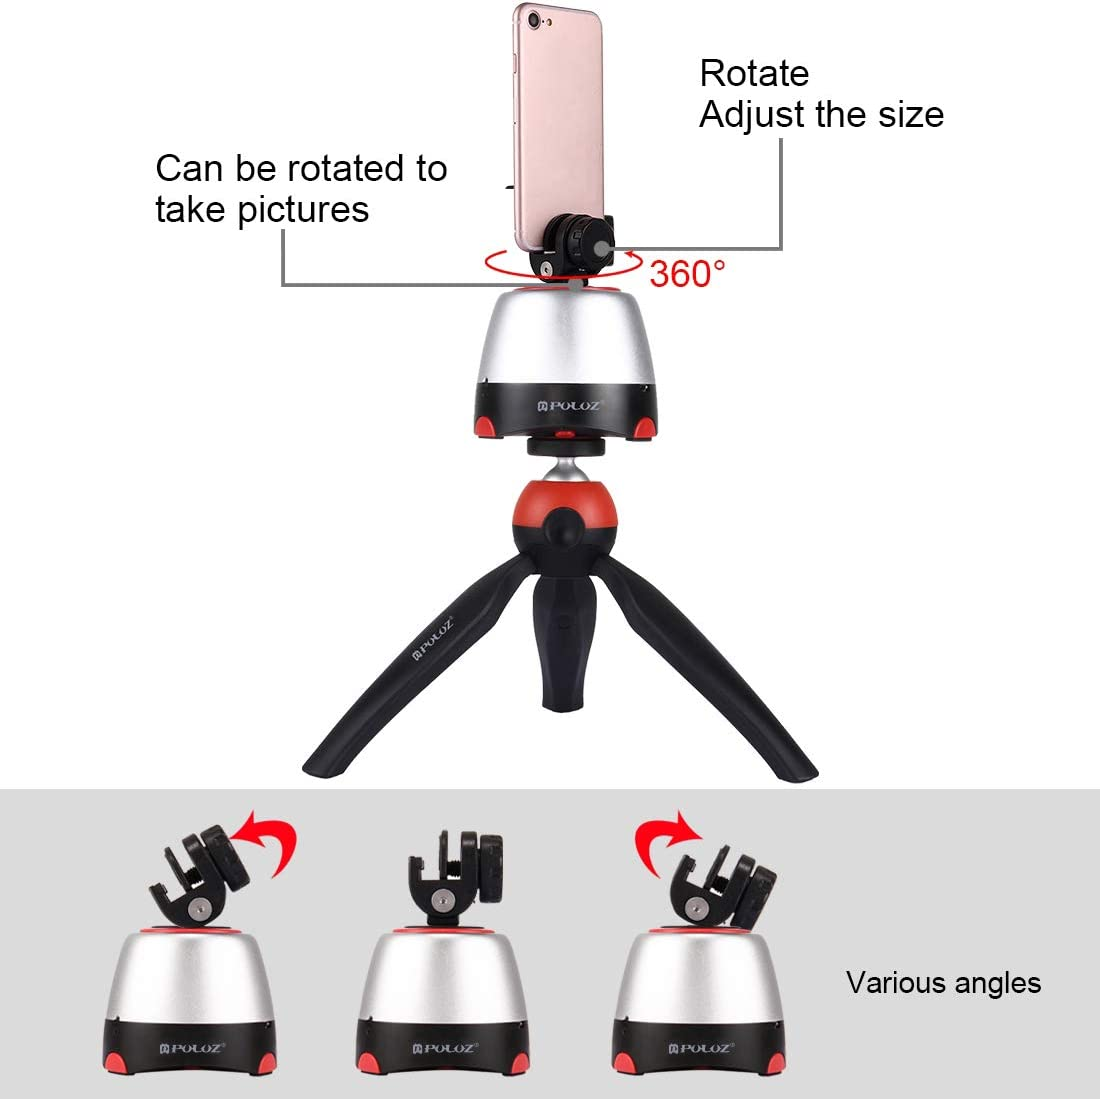 Lightweight Tripod Monopod for Smartphones GoPro Red and DSLR Cameras Under 1kg 2.2lb Loboo Idea Camera//Smartphone Tripod Monopod with 360 Degree Rotating Electronic Panorama Tripod Head